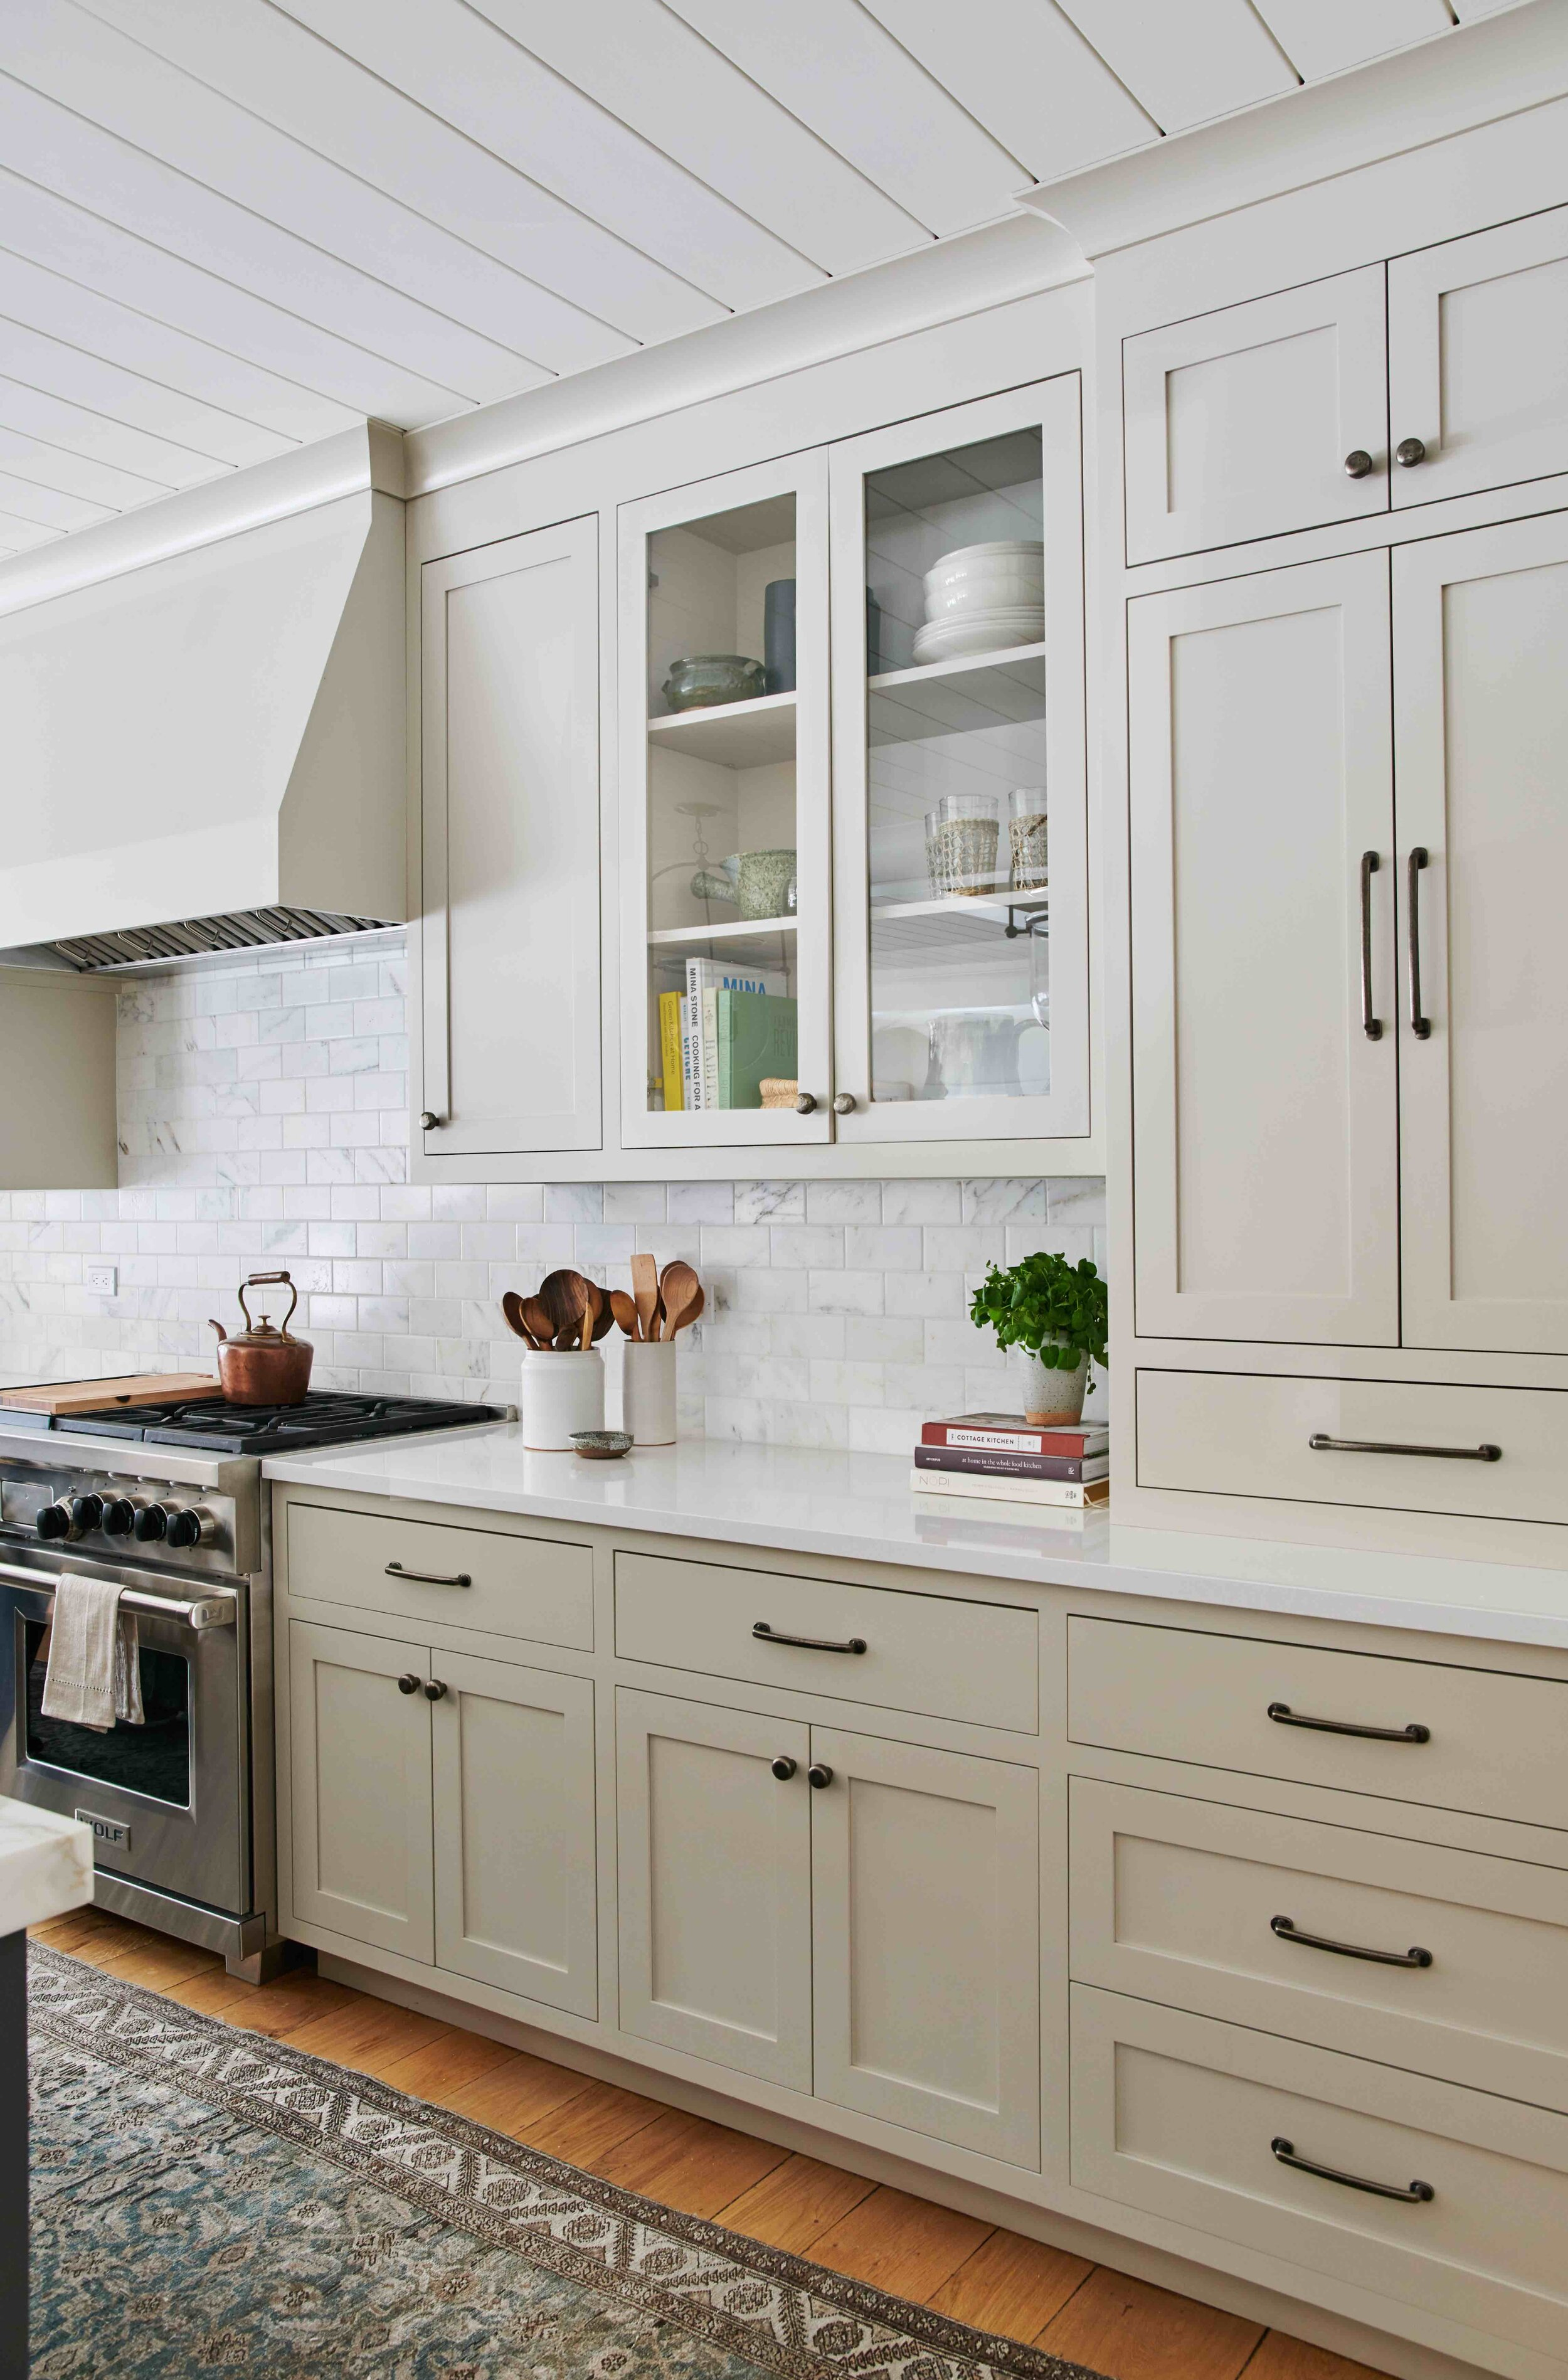 Good To Know Our Favorite Cabinet Hardware Pairings W Design